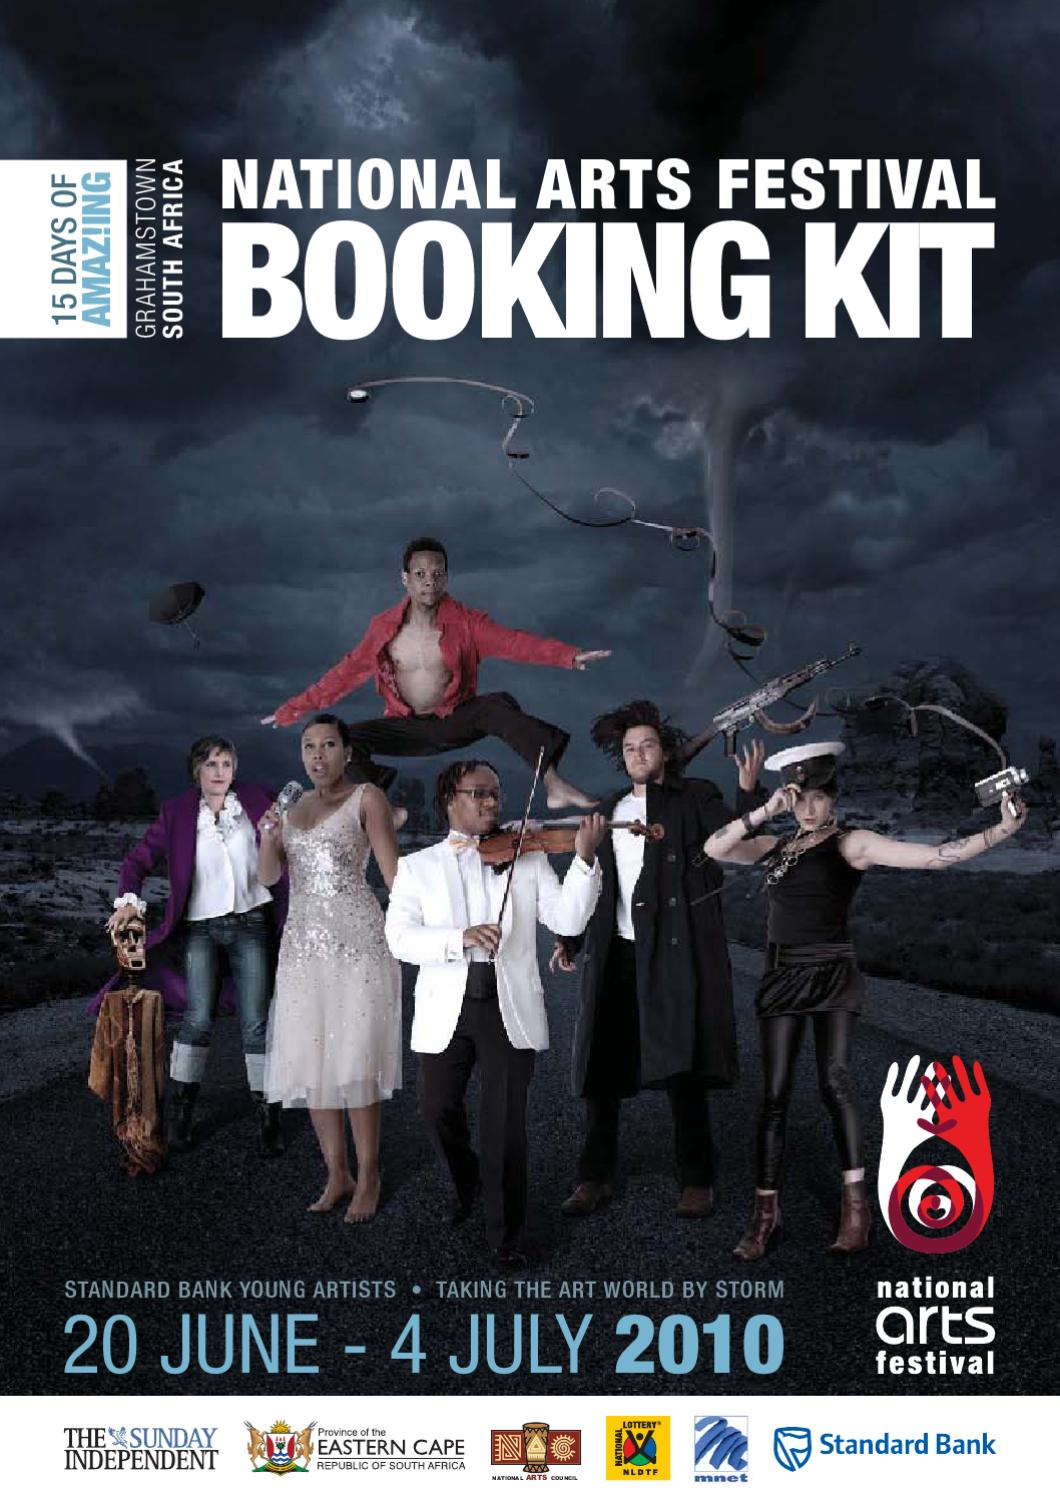 a844c15fc0d National Arts Festival Booking Kit 2010 by Tony Lankester - issuu